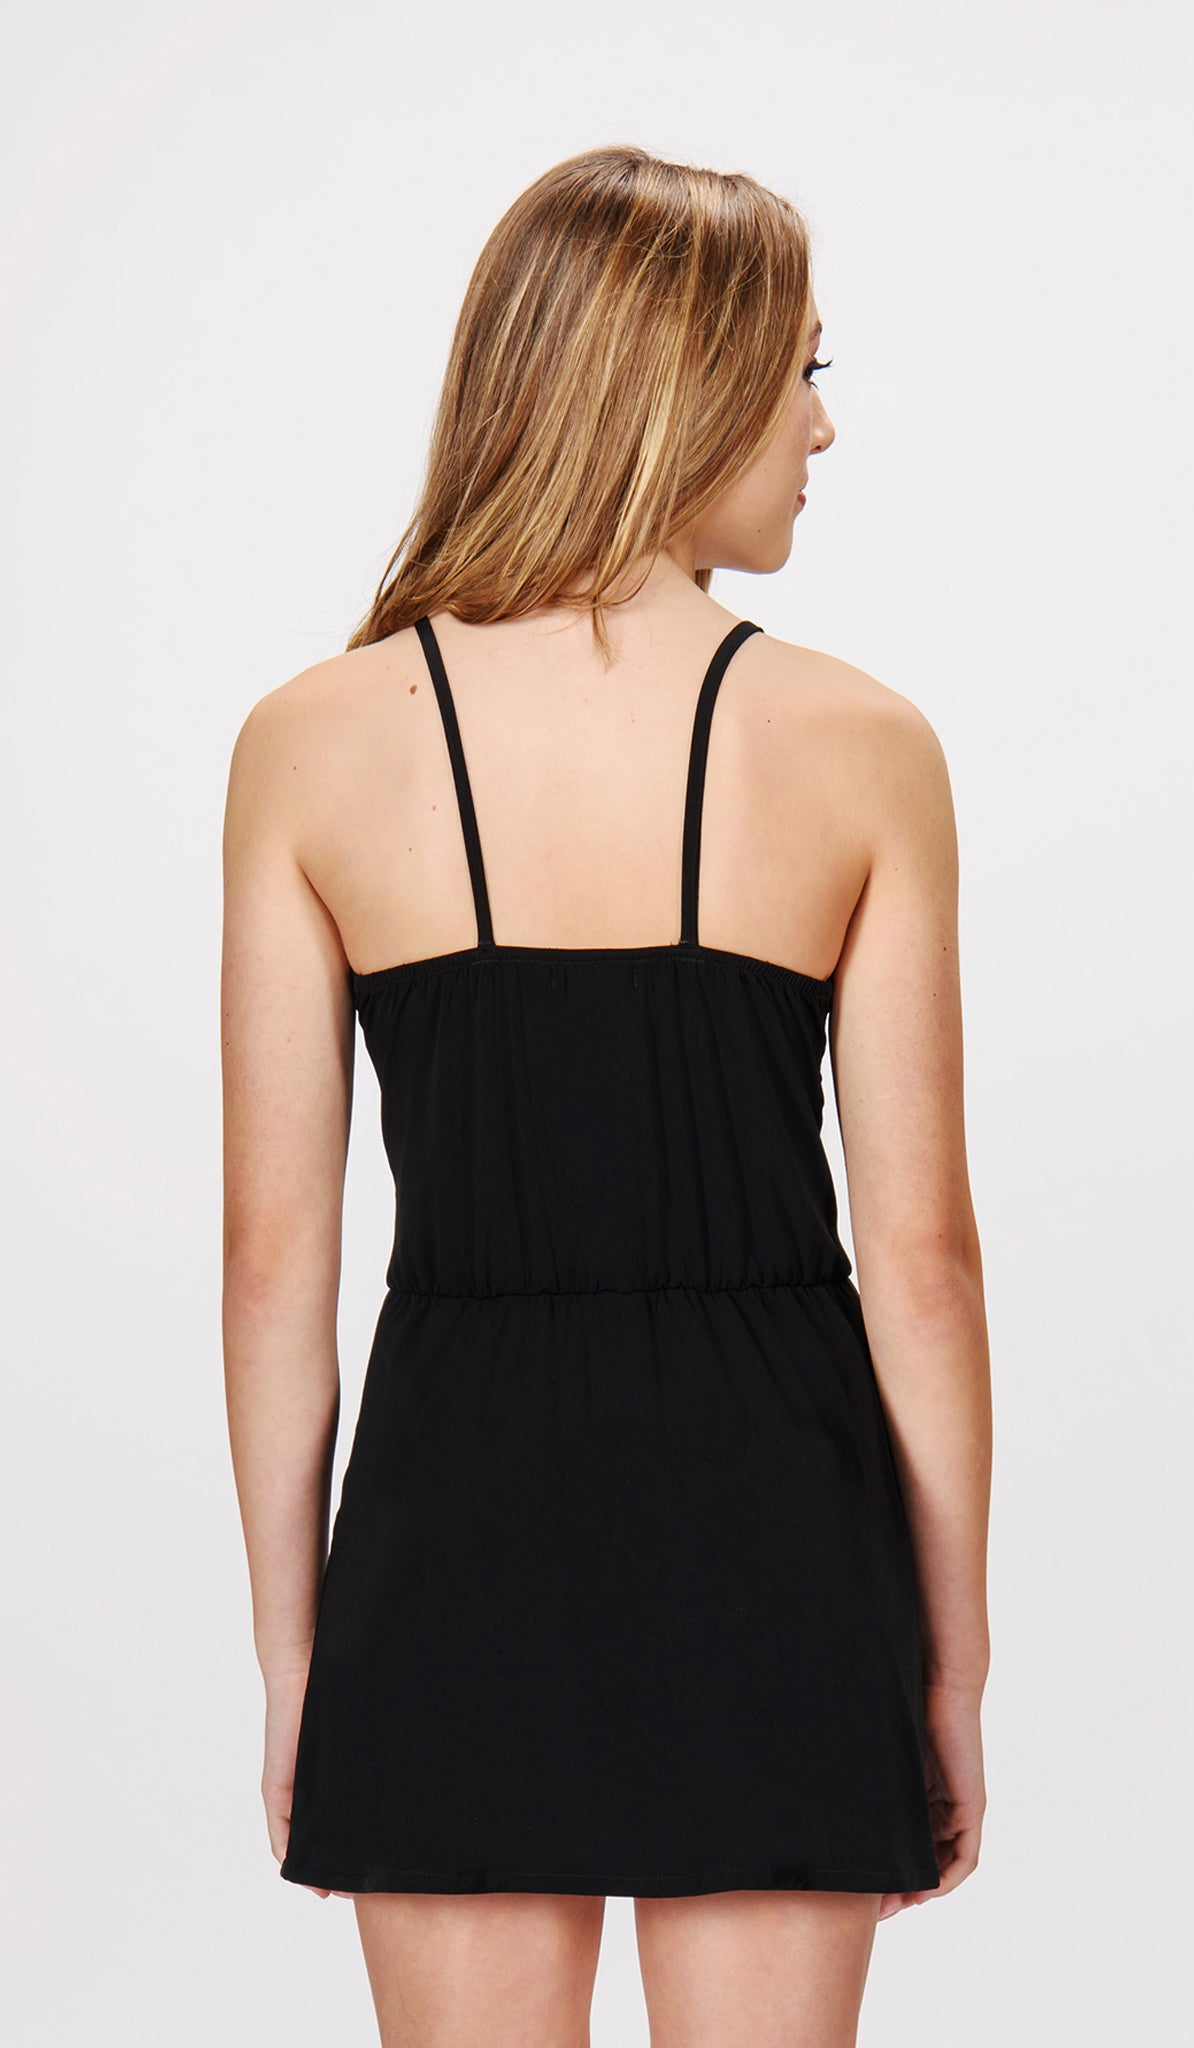 THE TYRA ROMPER - SMYC3033